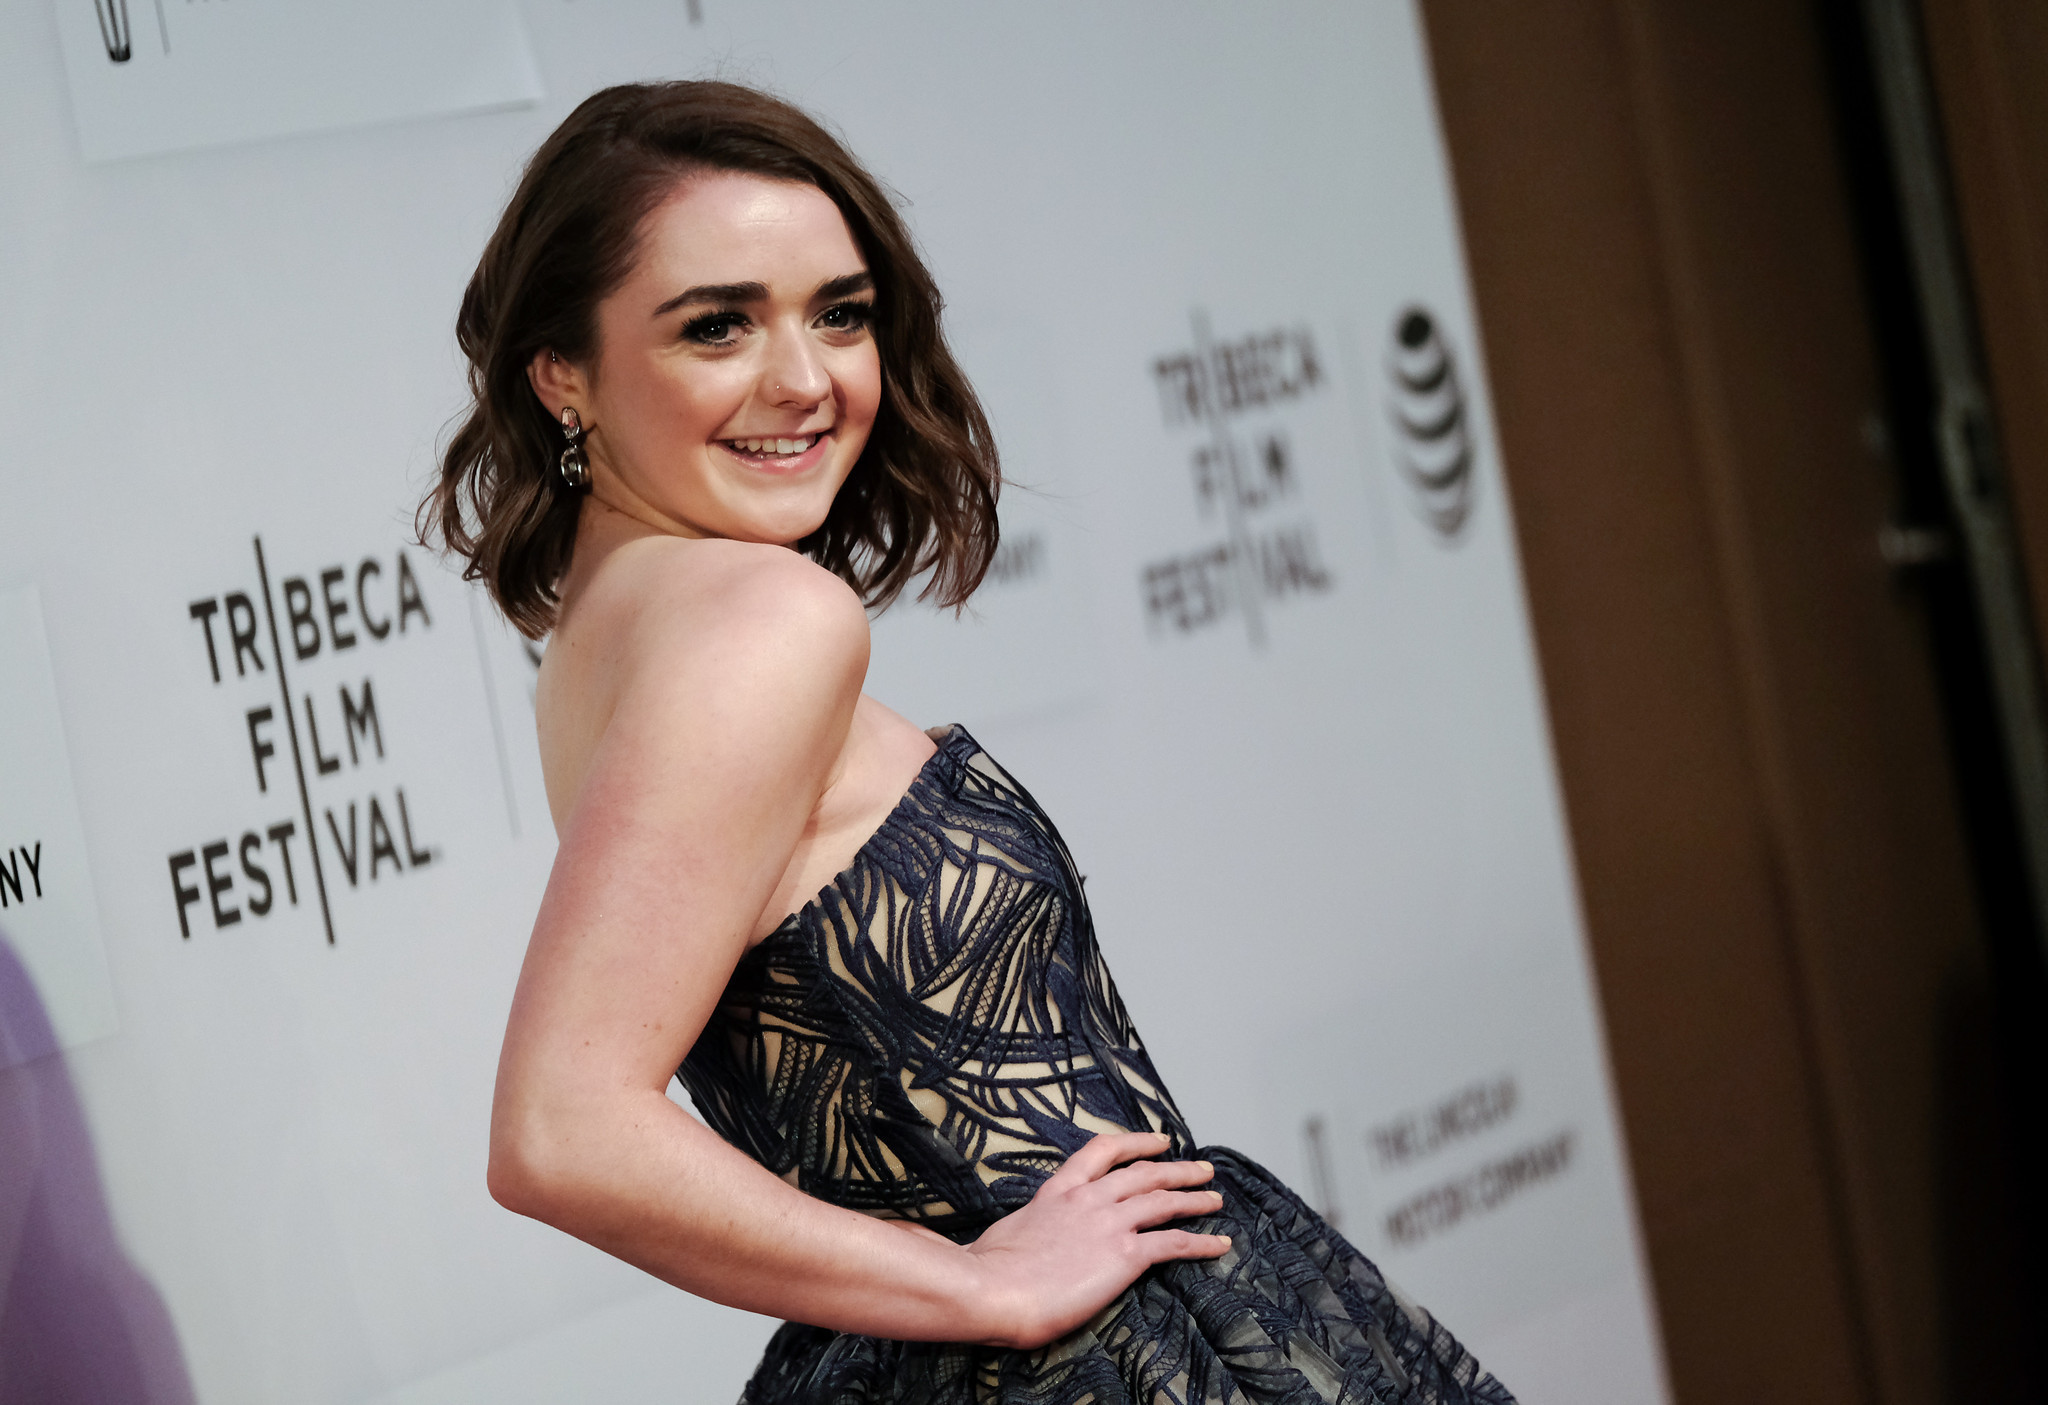 Images Maisie Williams nudes (82 photos), Pussy, Fappening, Boobs, butt 2018